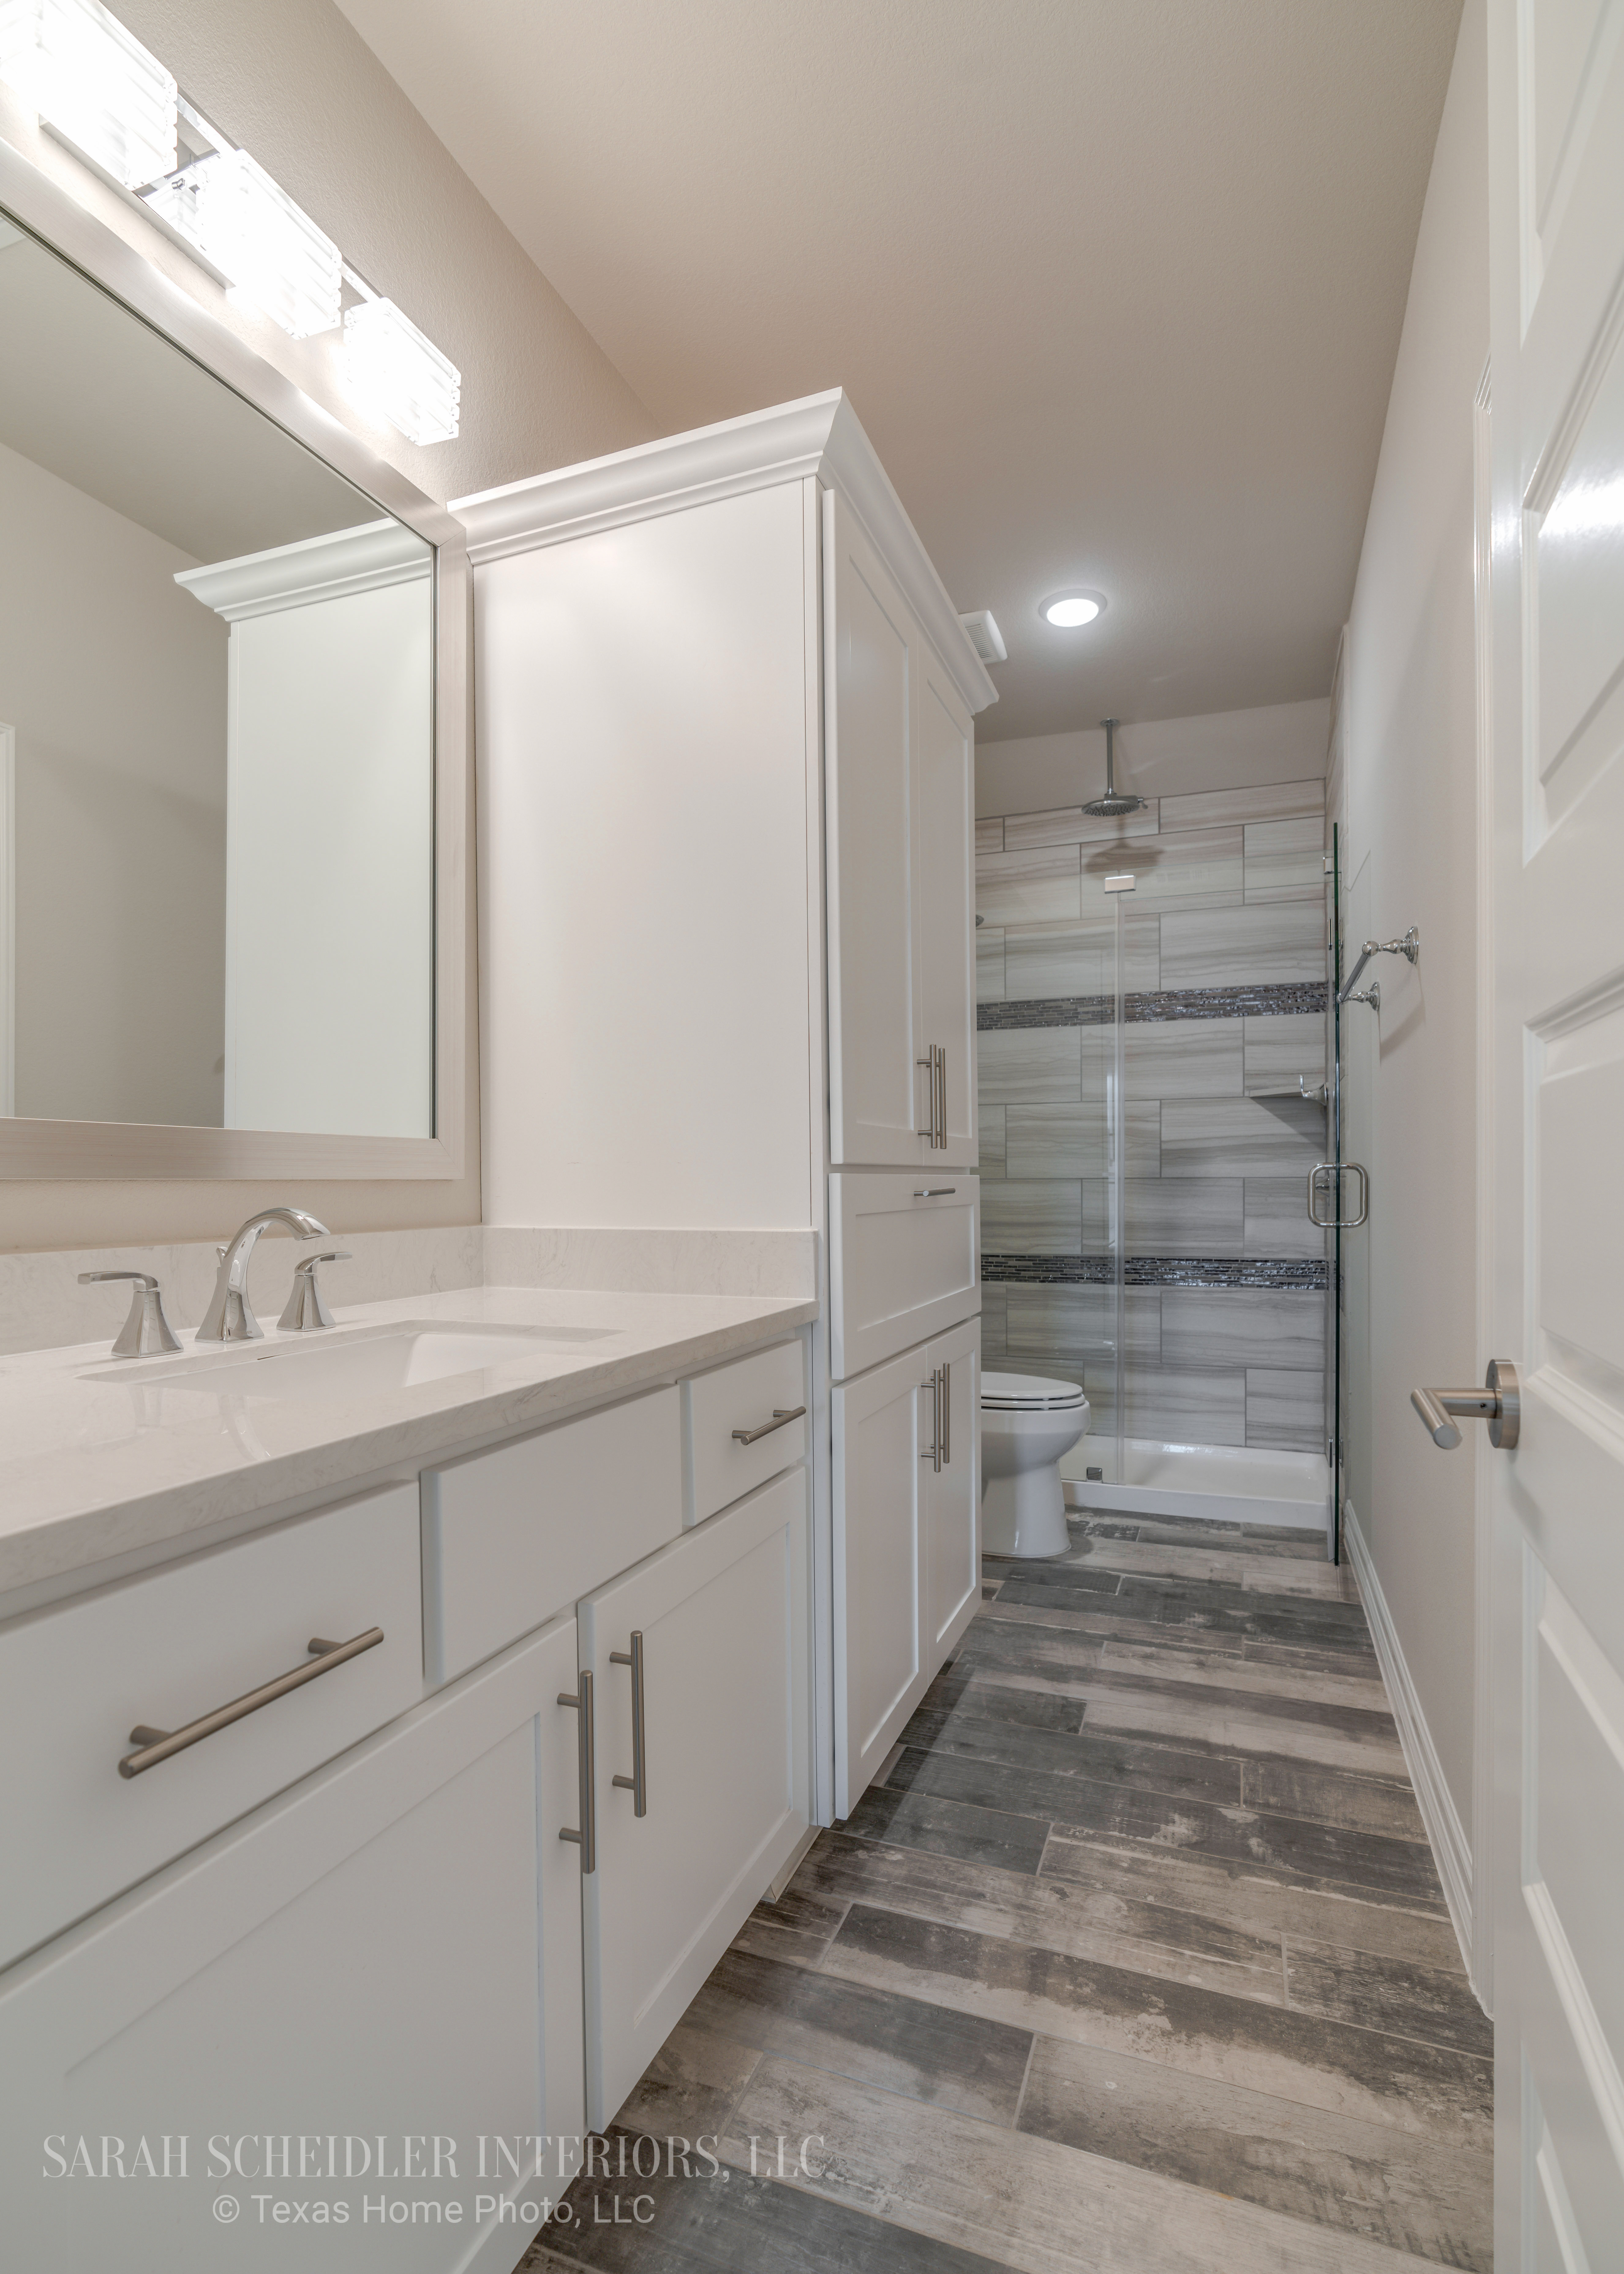 White Secondary Bathroom Design with Silestone Quartz Countertops, Chrome Accents, and Rustic Wood Tile Flooring